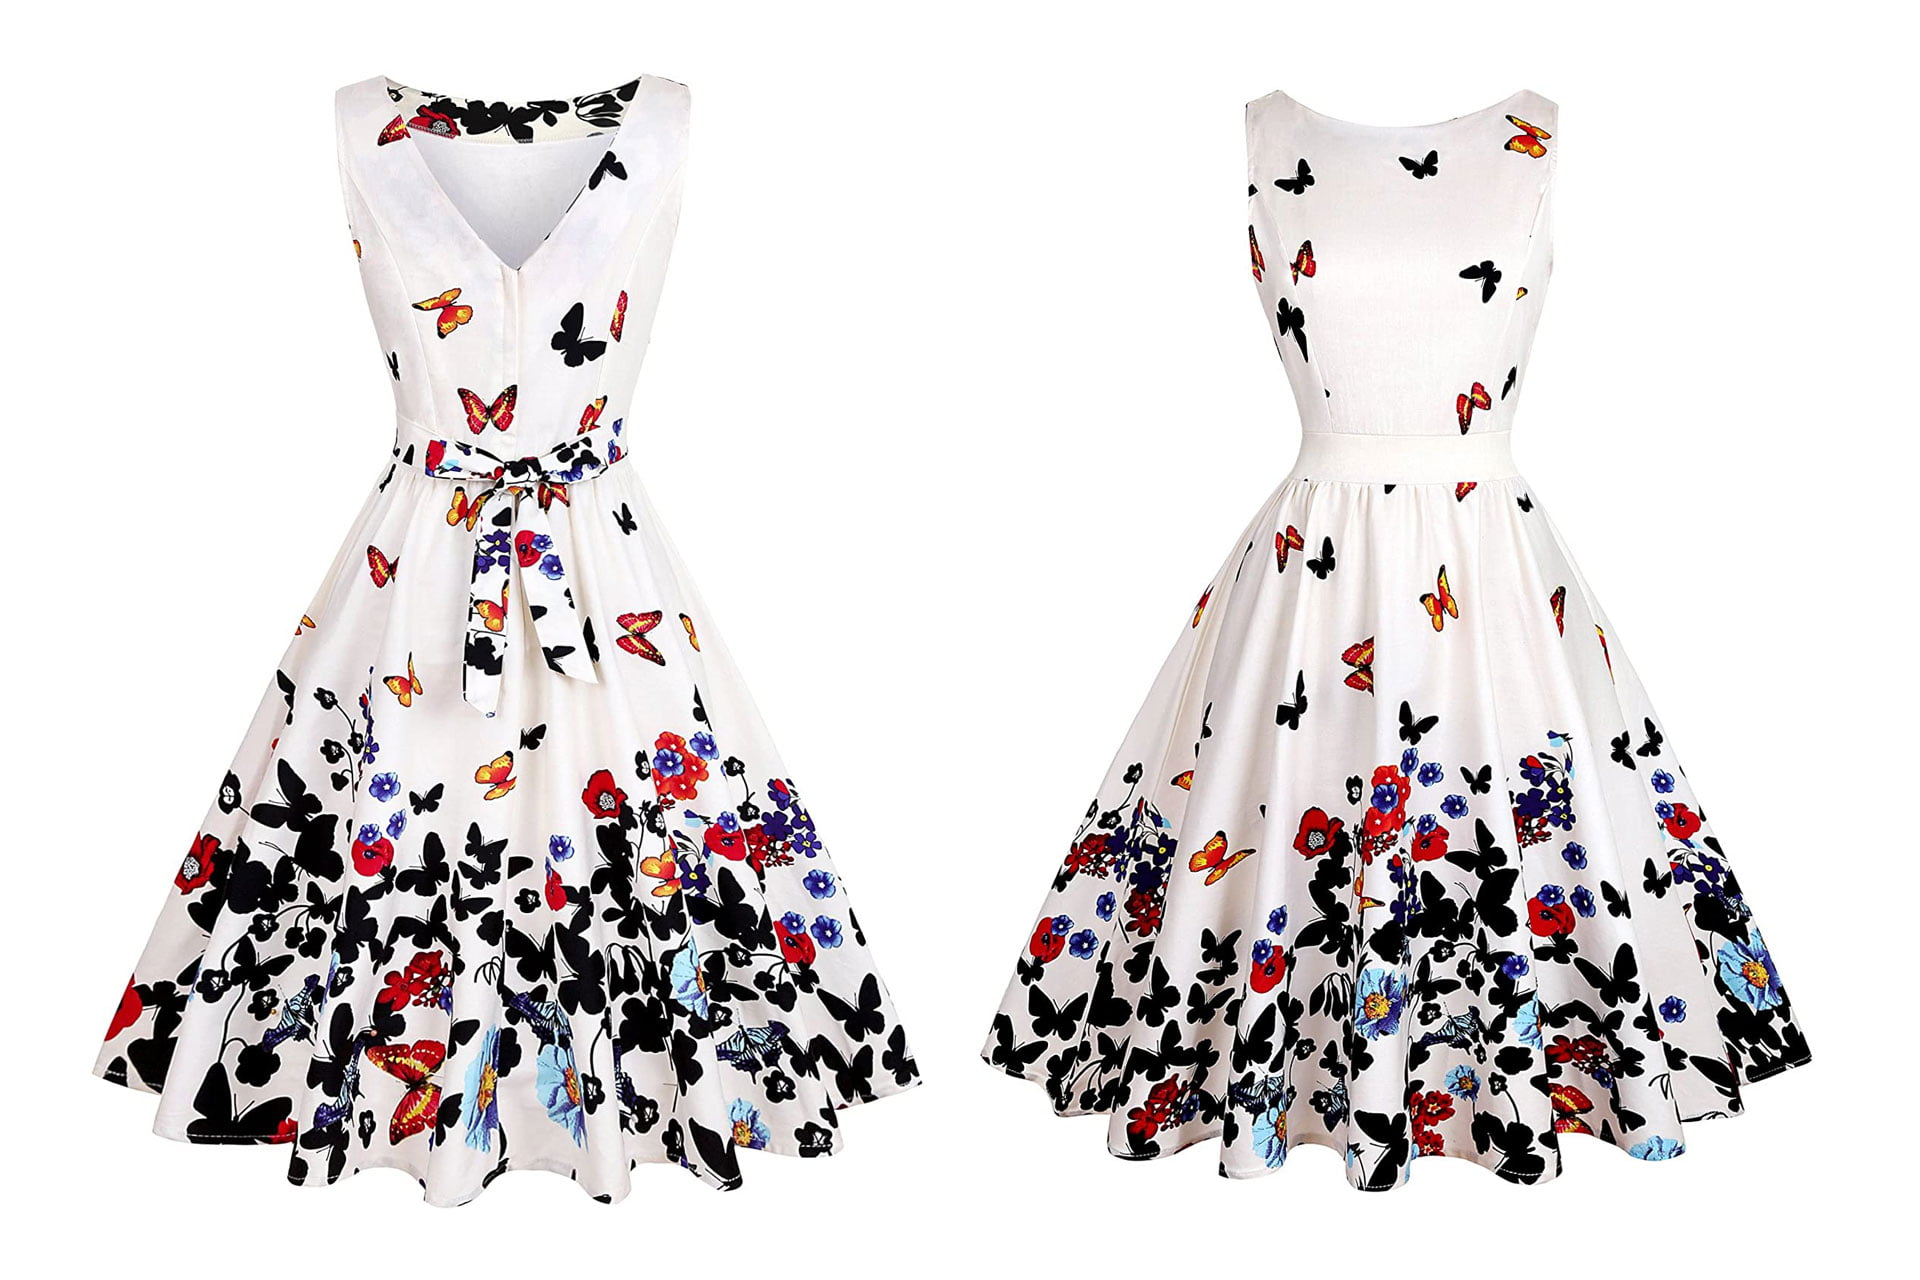 OWIN Women's Floral 1950s Vintage Swing Cocktail Party Dress